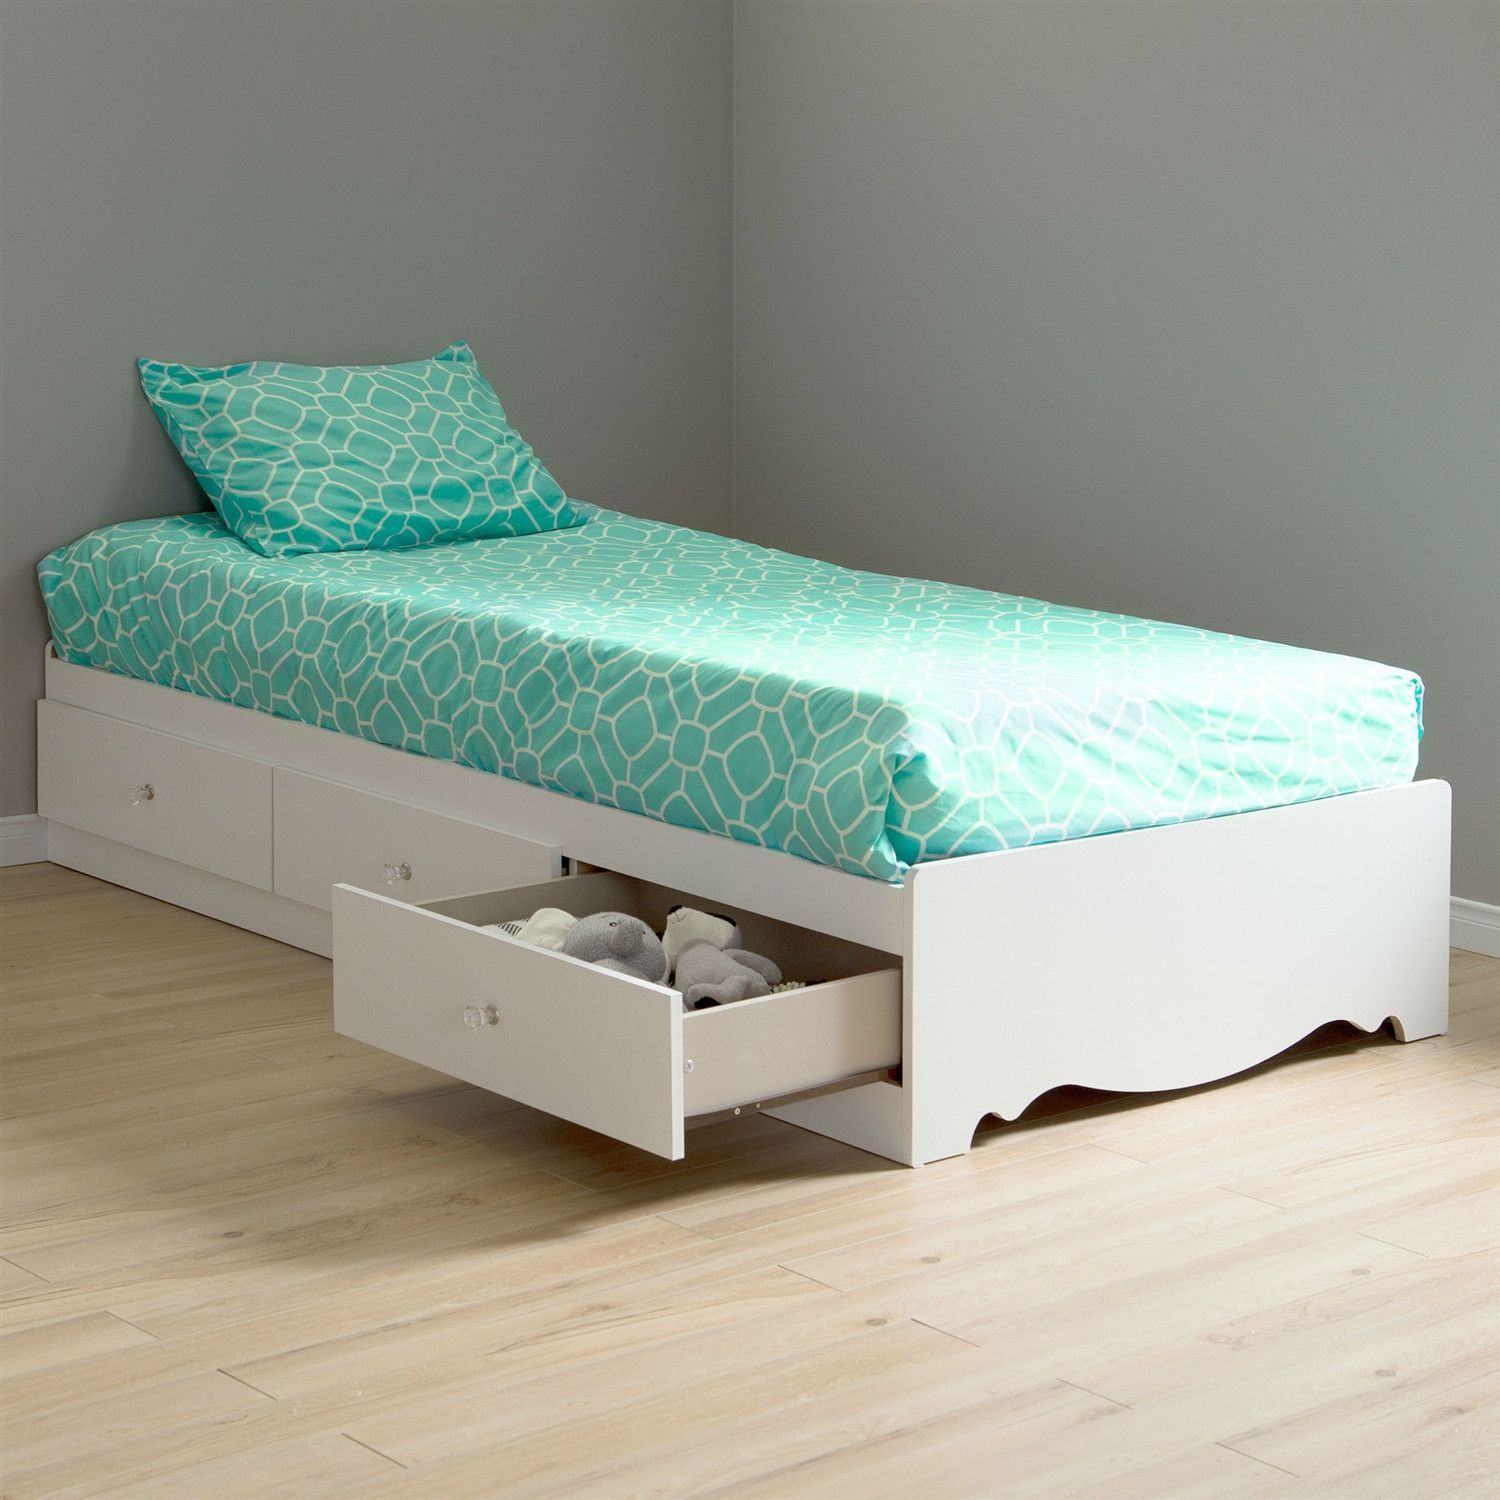 Daybed with trundle full size this item will arrive in  days and only ships to the continuous